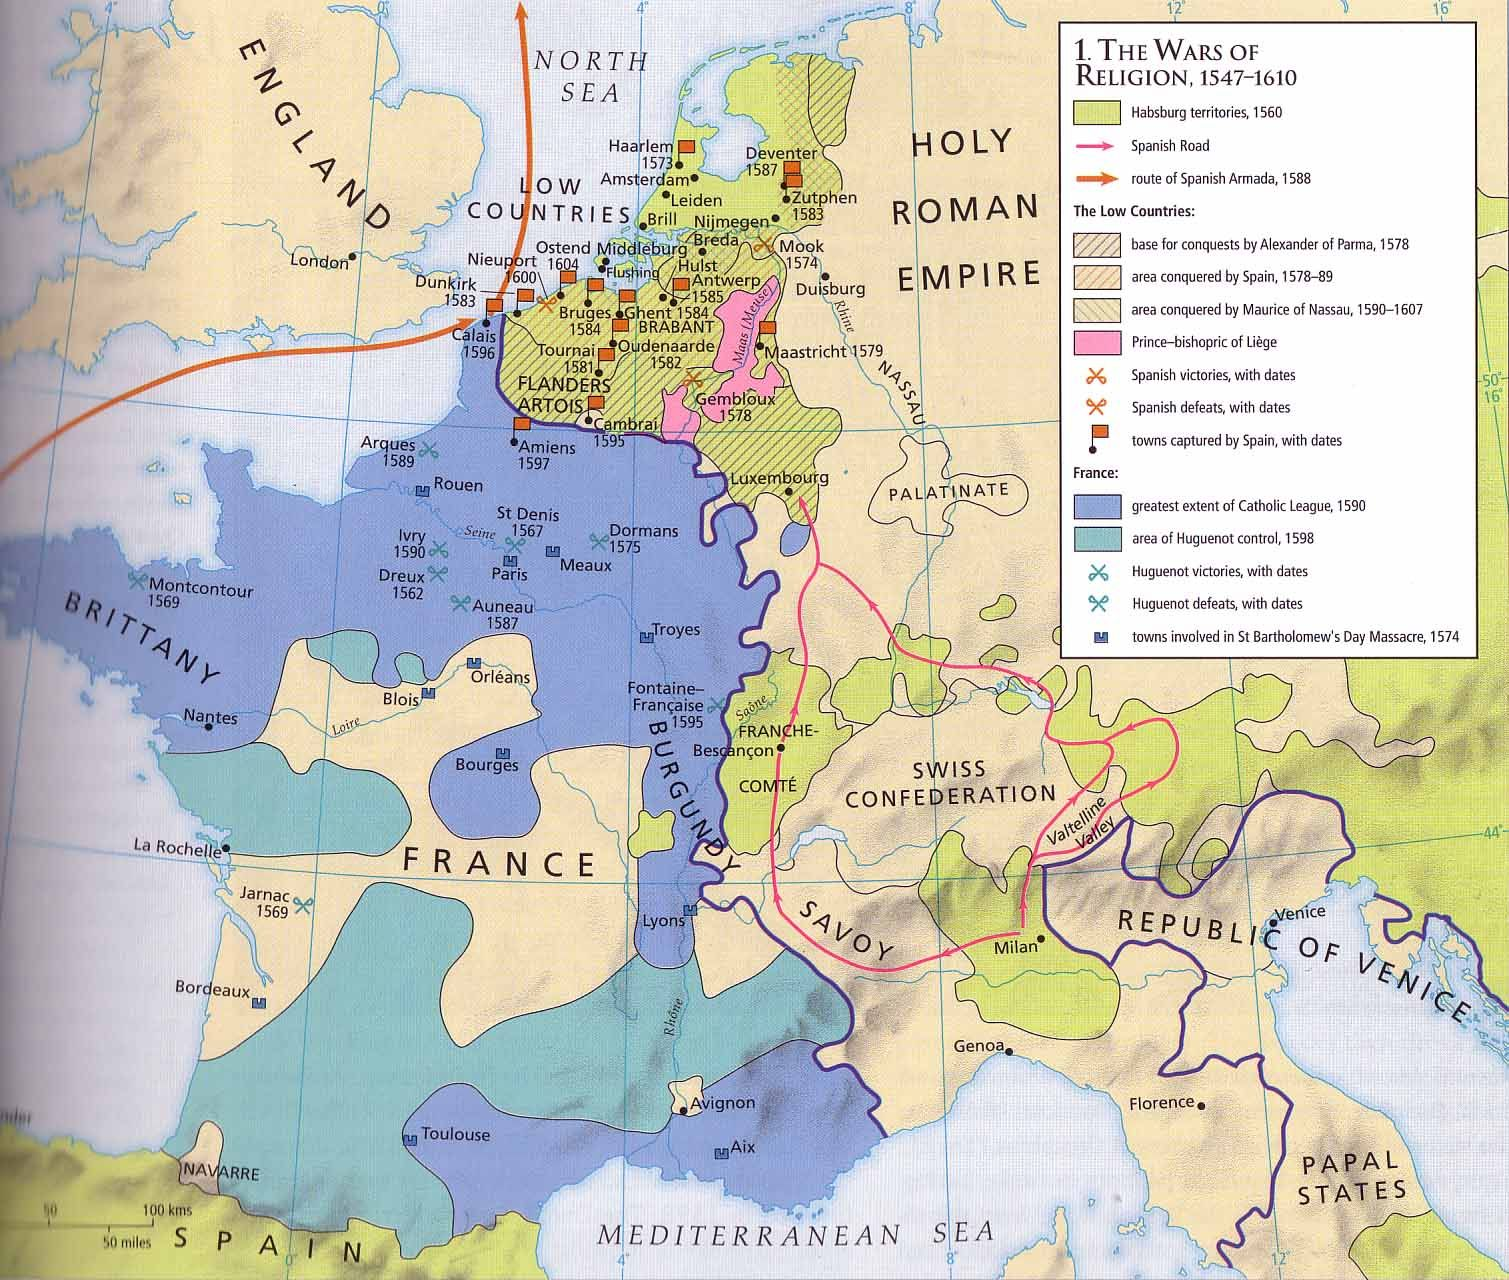 European Wars of Religion 1547 1610